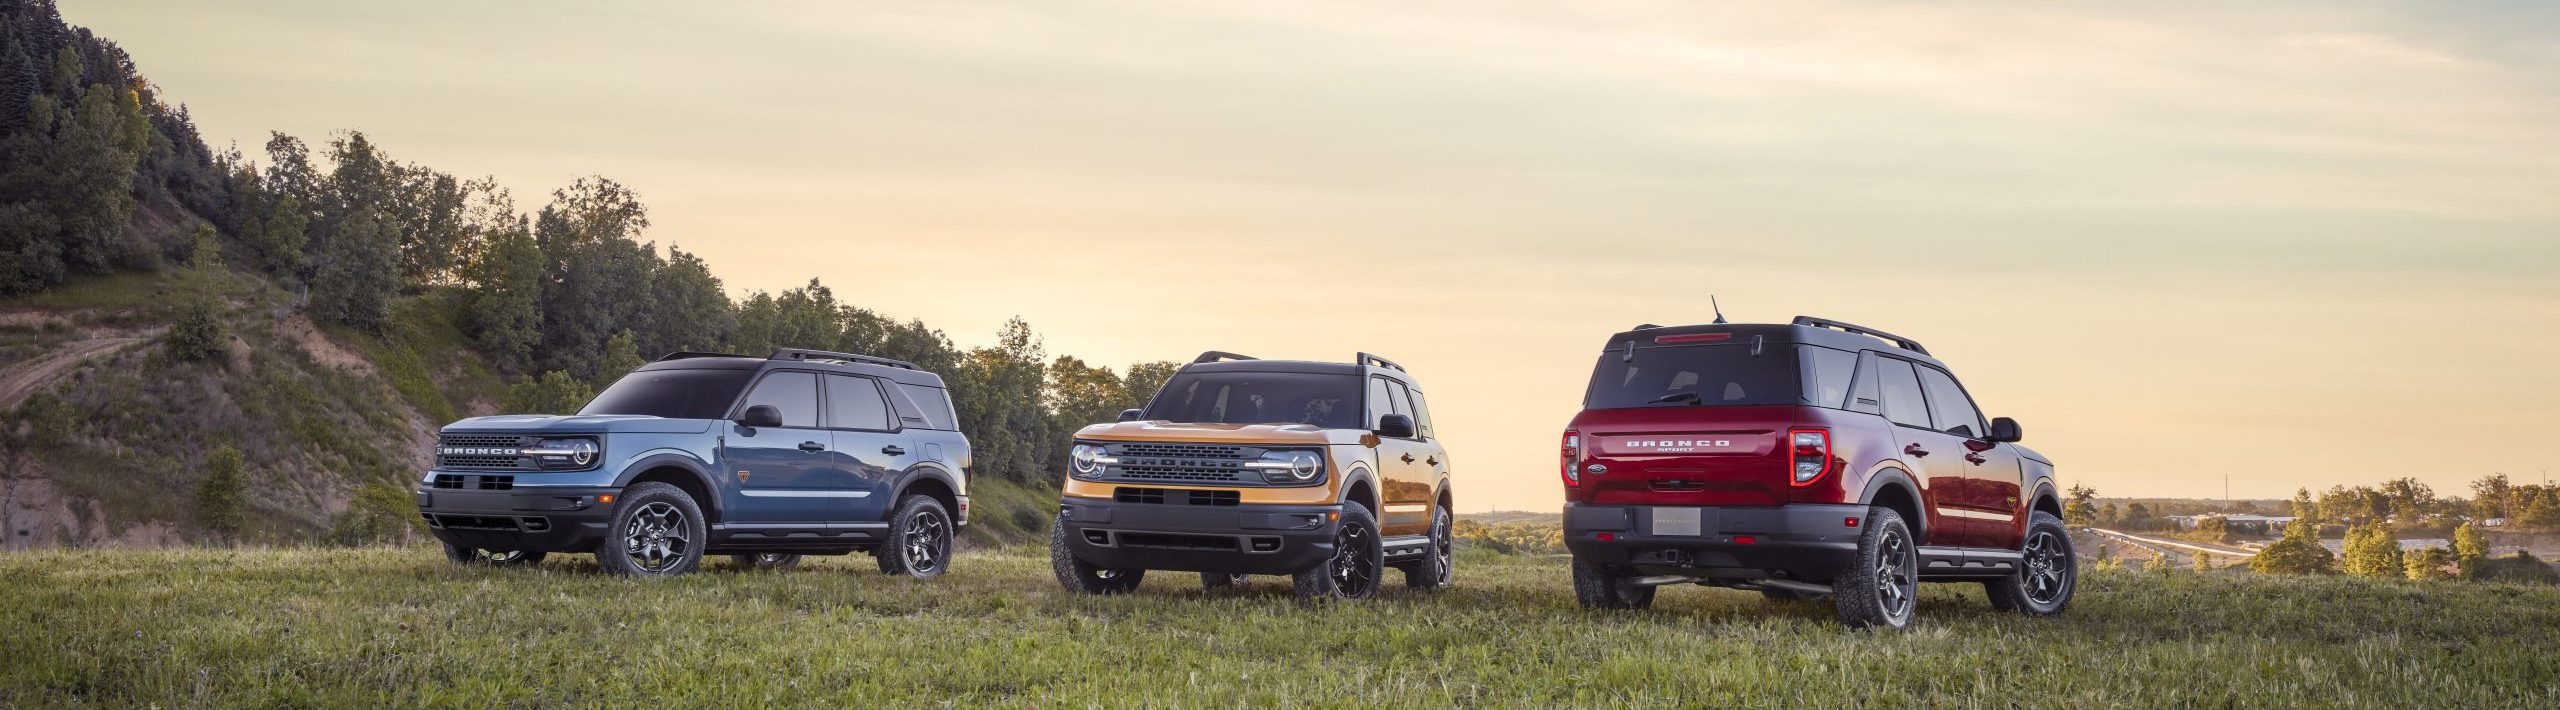 Welcome To The Family: New Customers Attracted To Bronco By The Sport